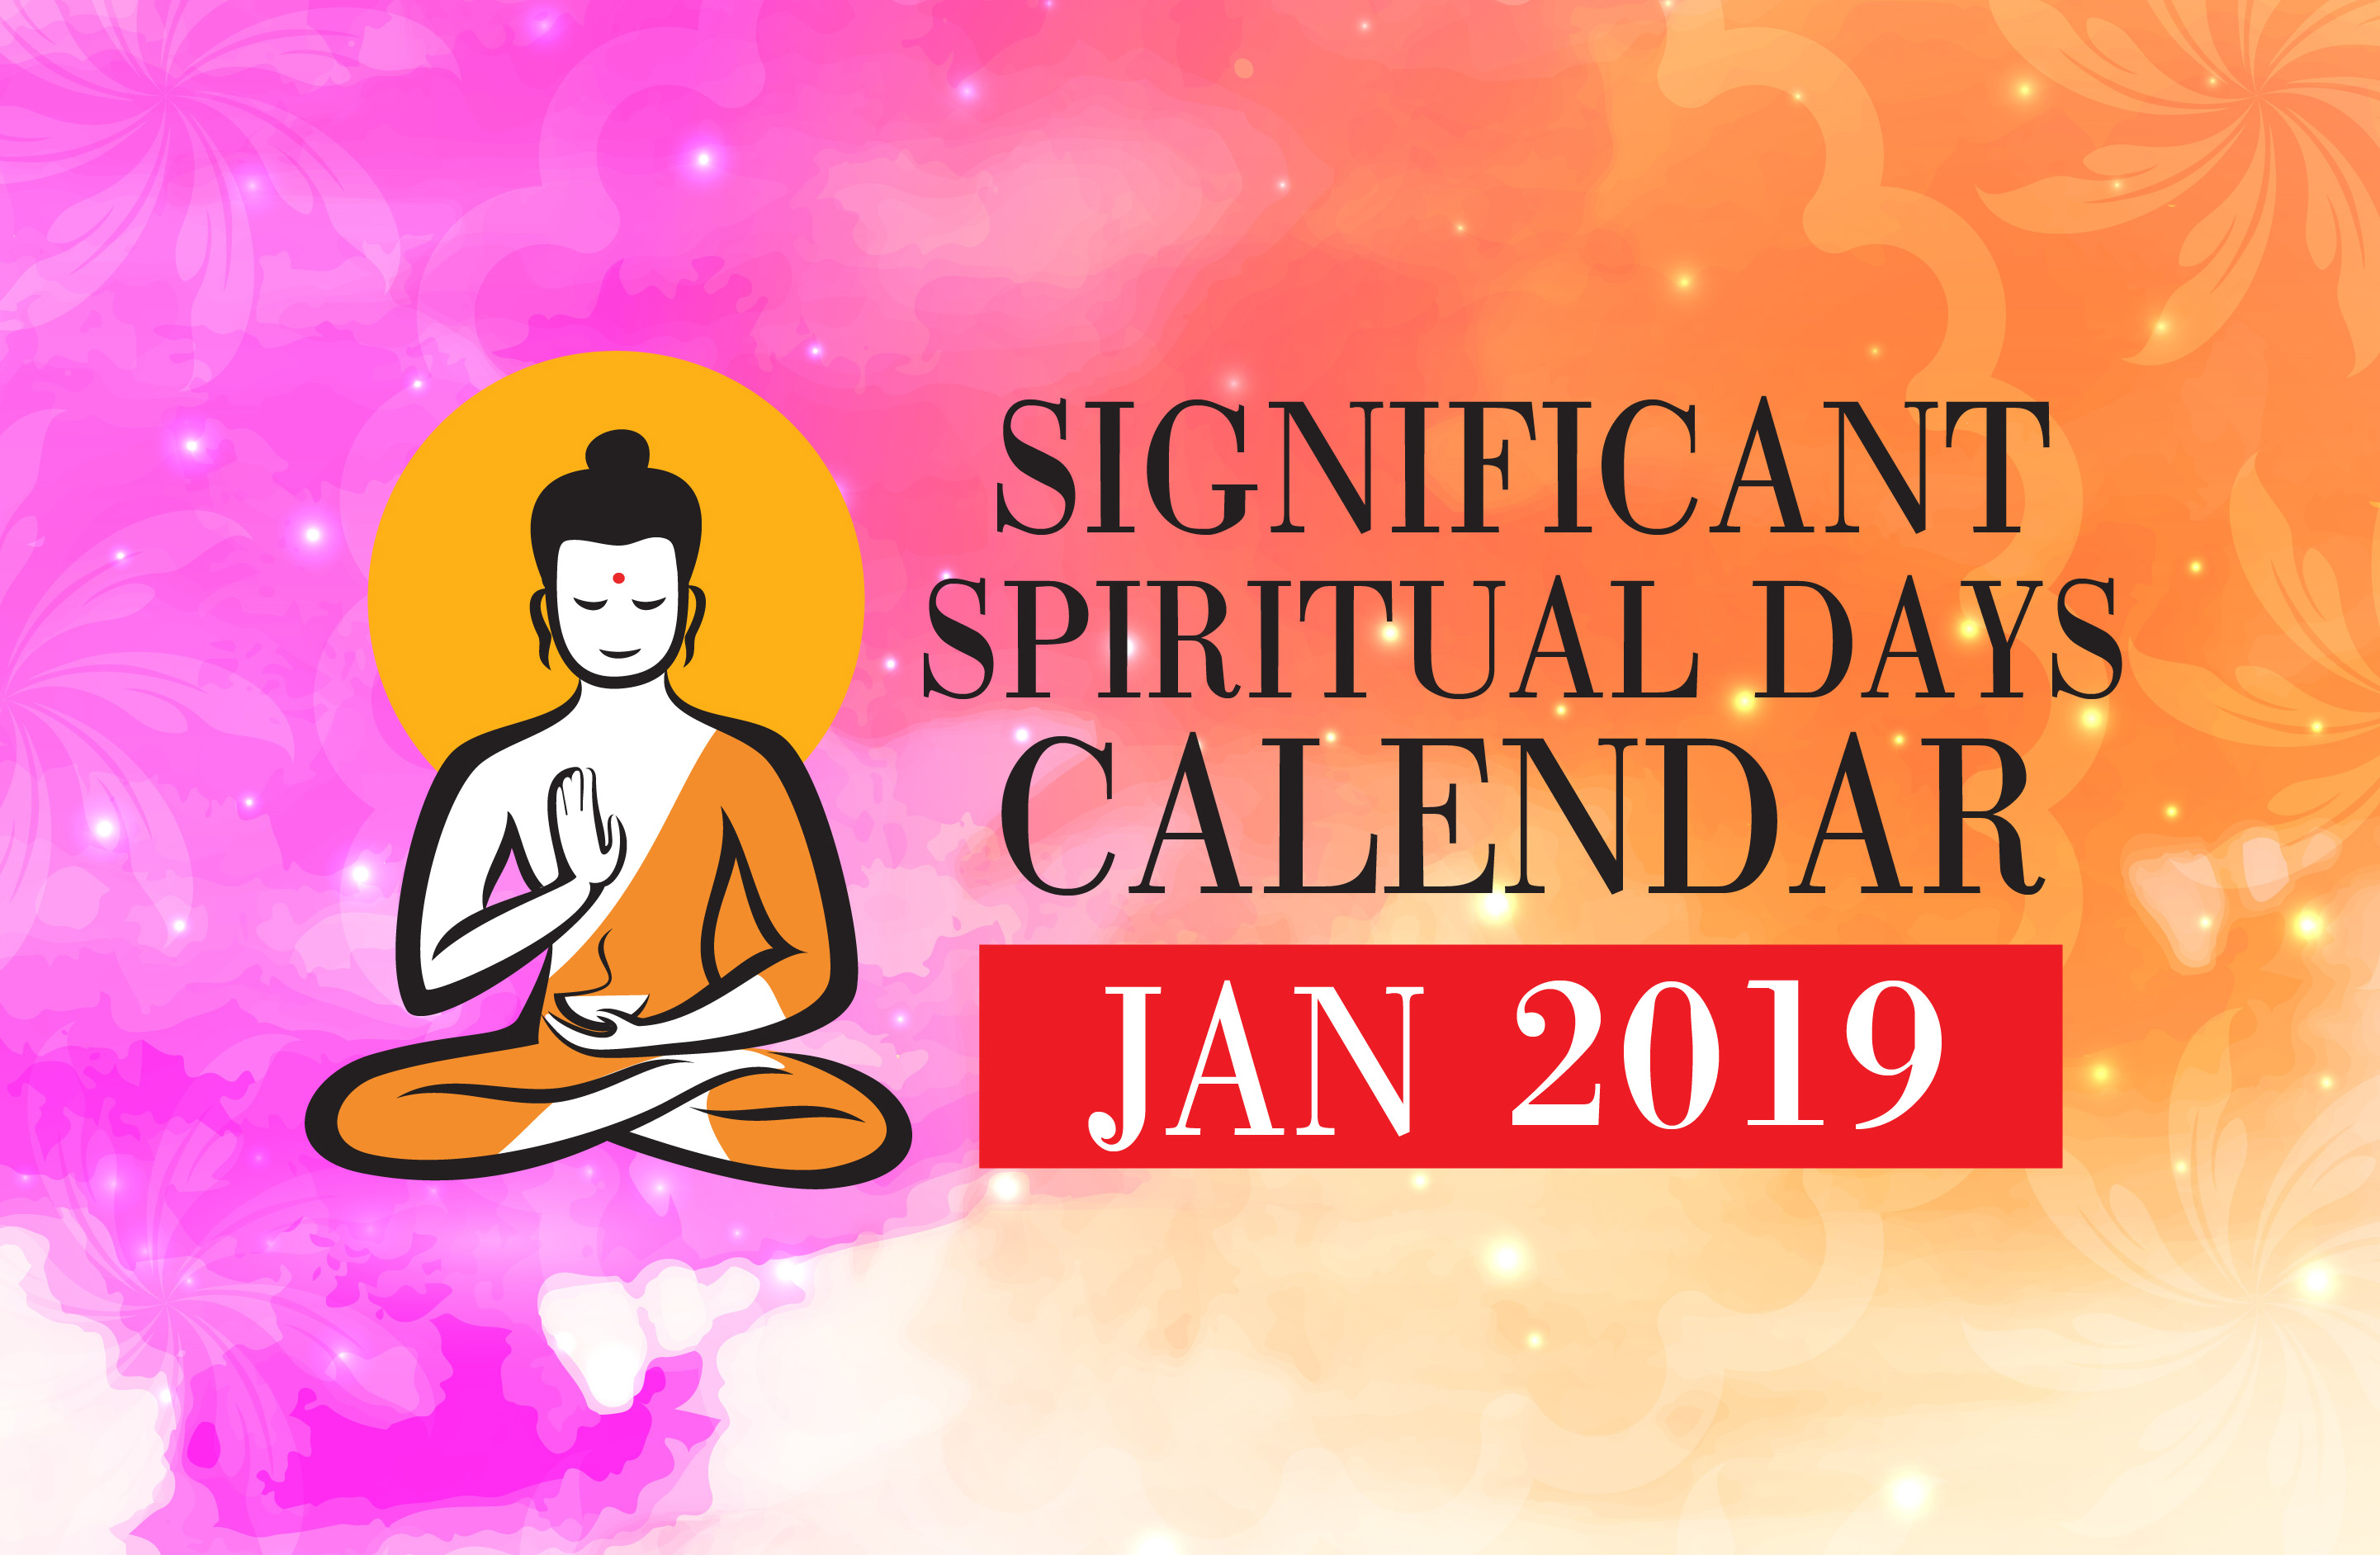 Significant Spiritual Days for January 2019 - WOFS com